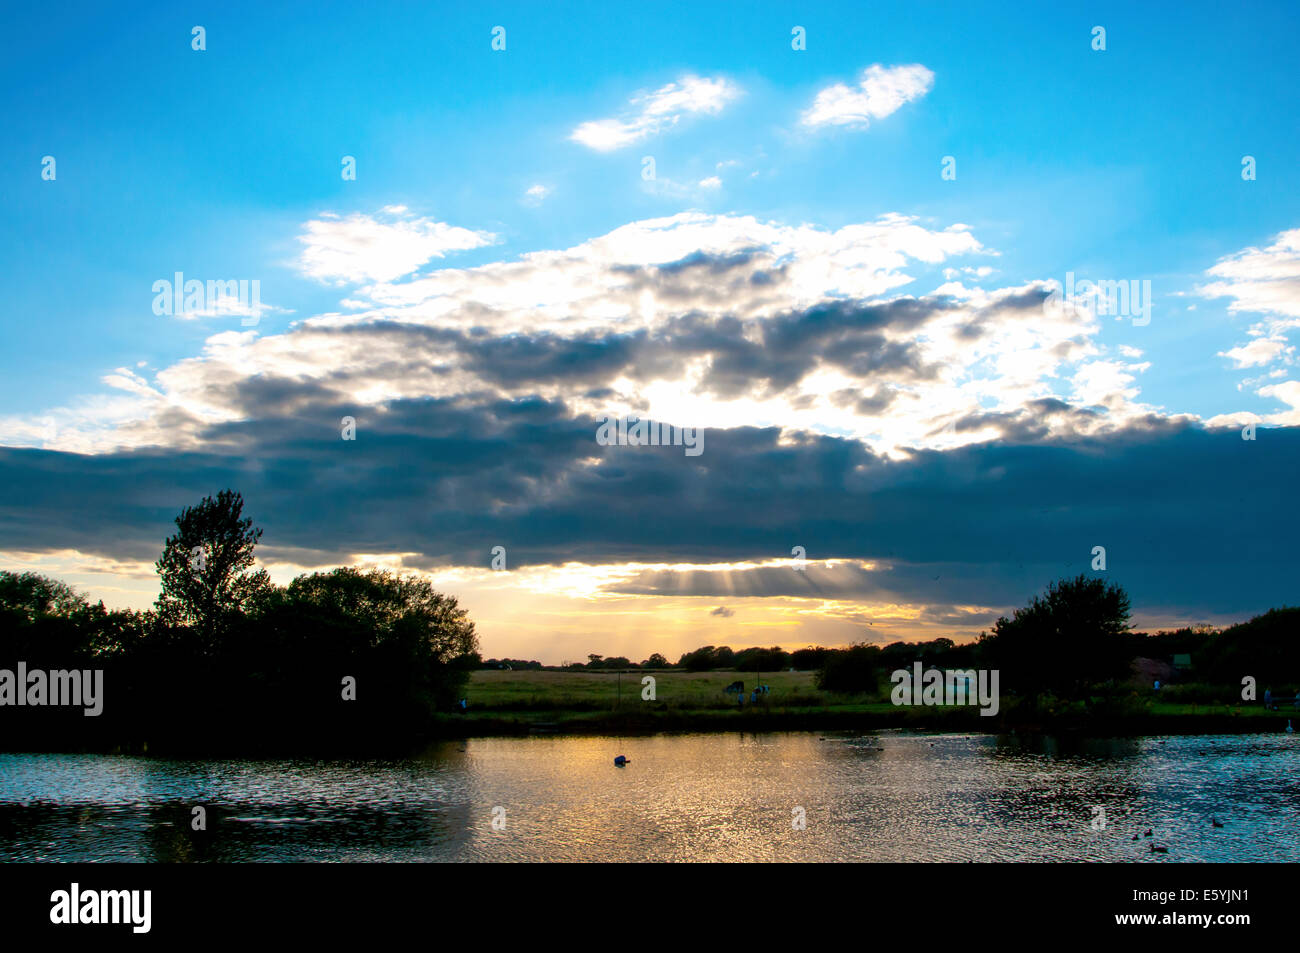 Nantwich lake just before sunset with the sun shining through some dark clouds - Stock Image